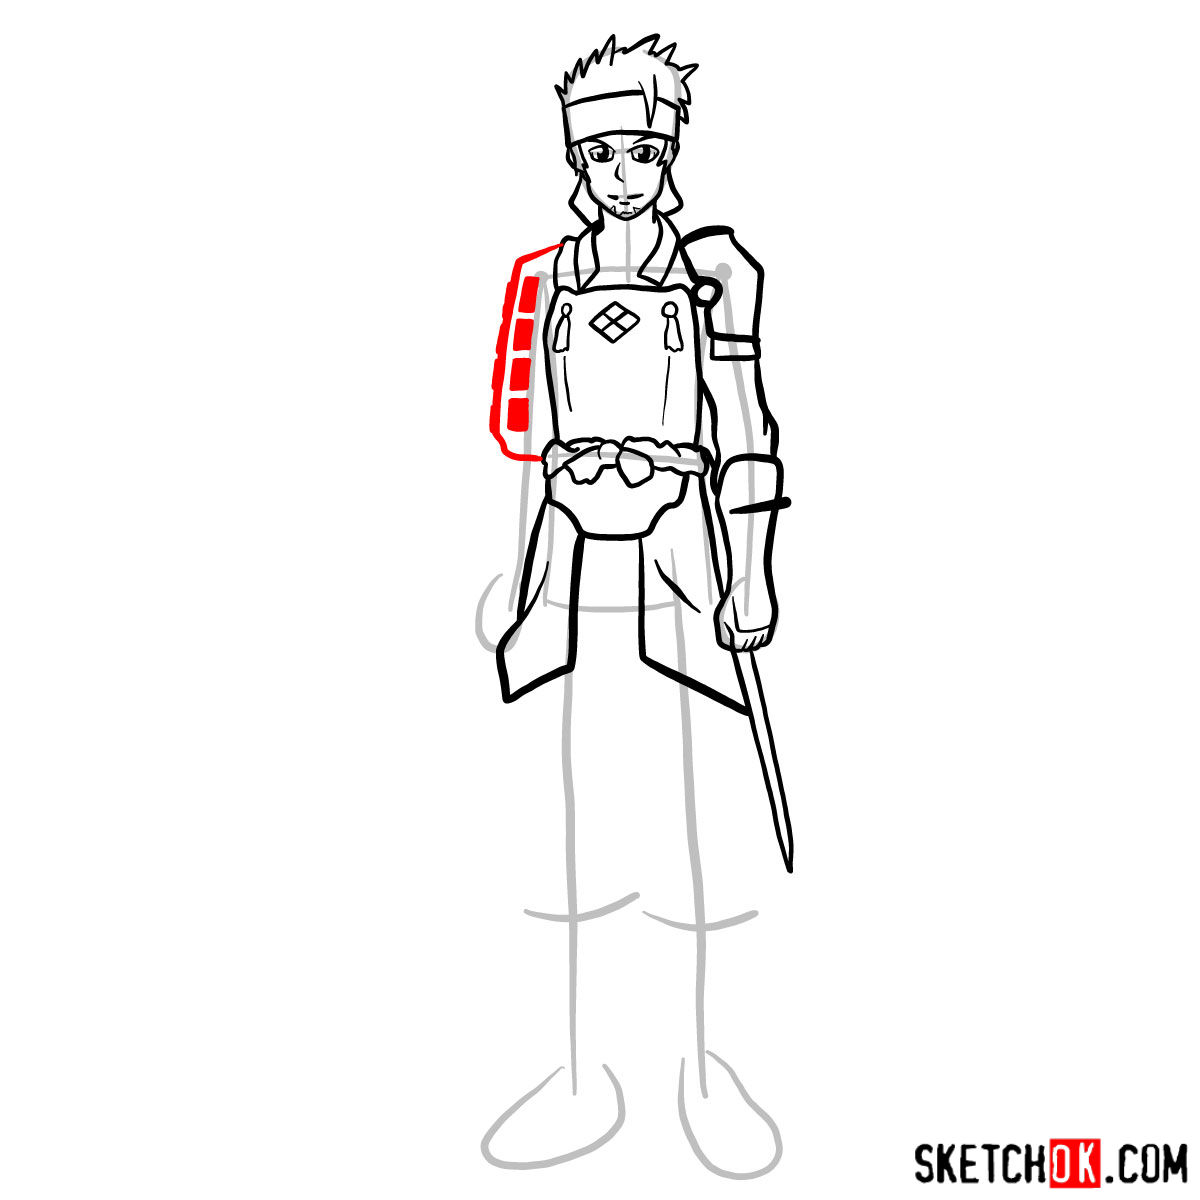 How to draw Klein from Sword Art Online - step 11